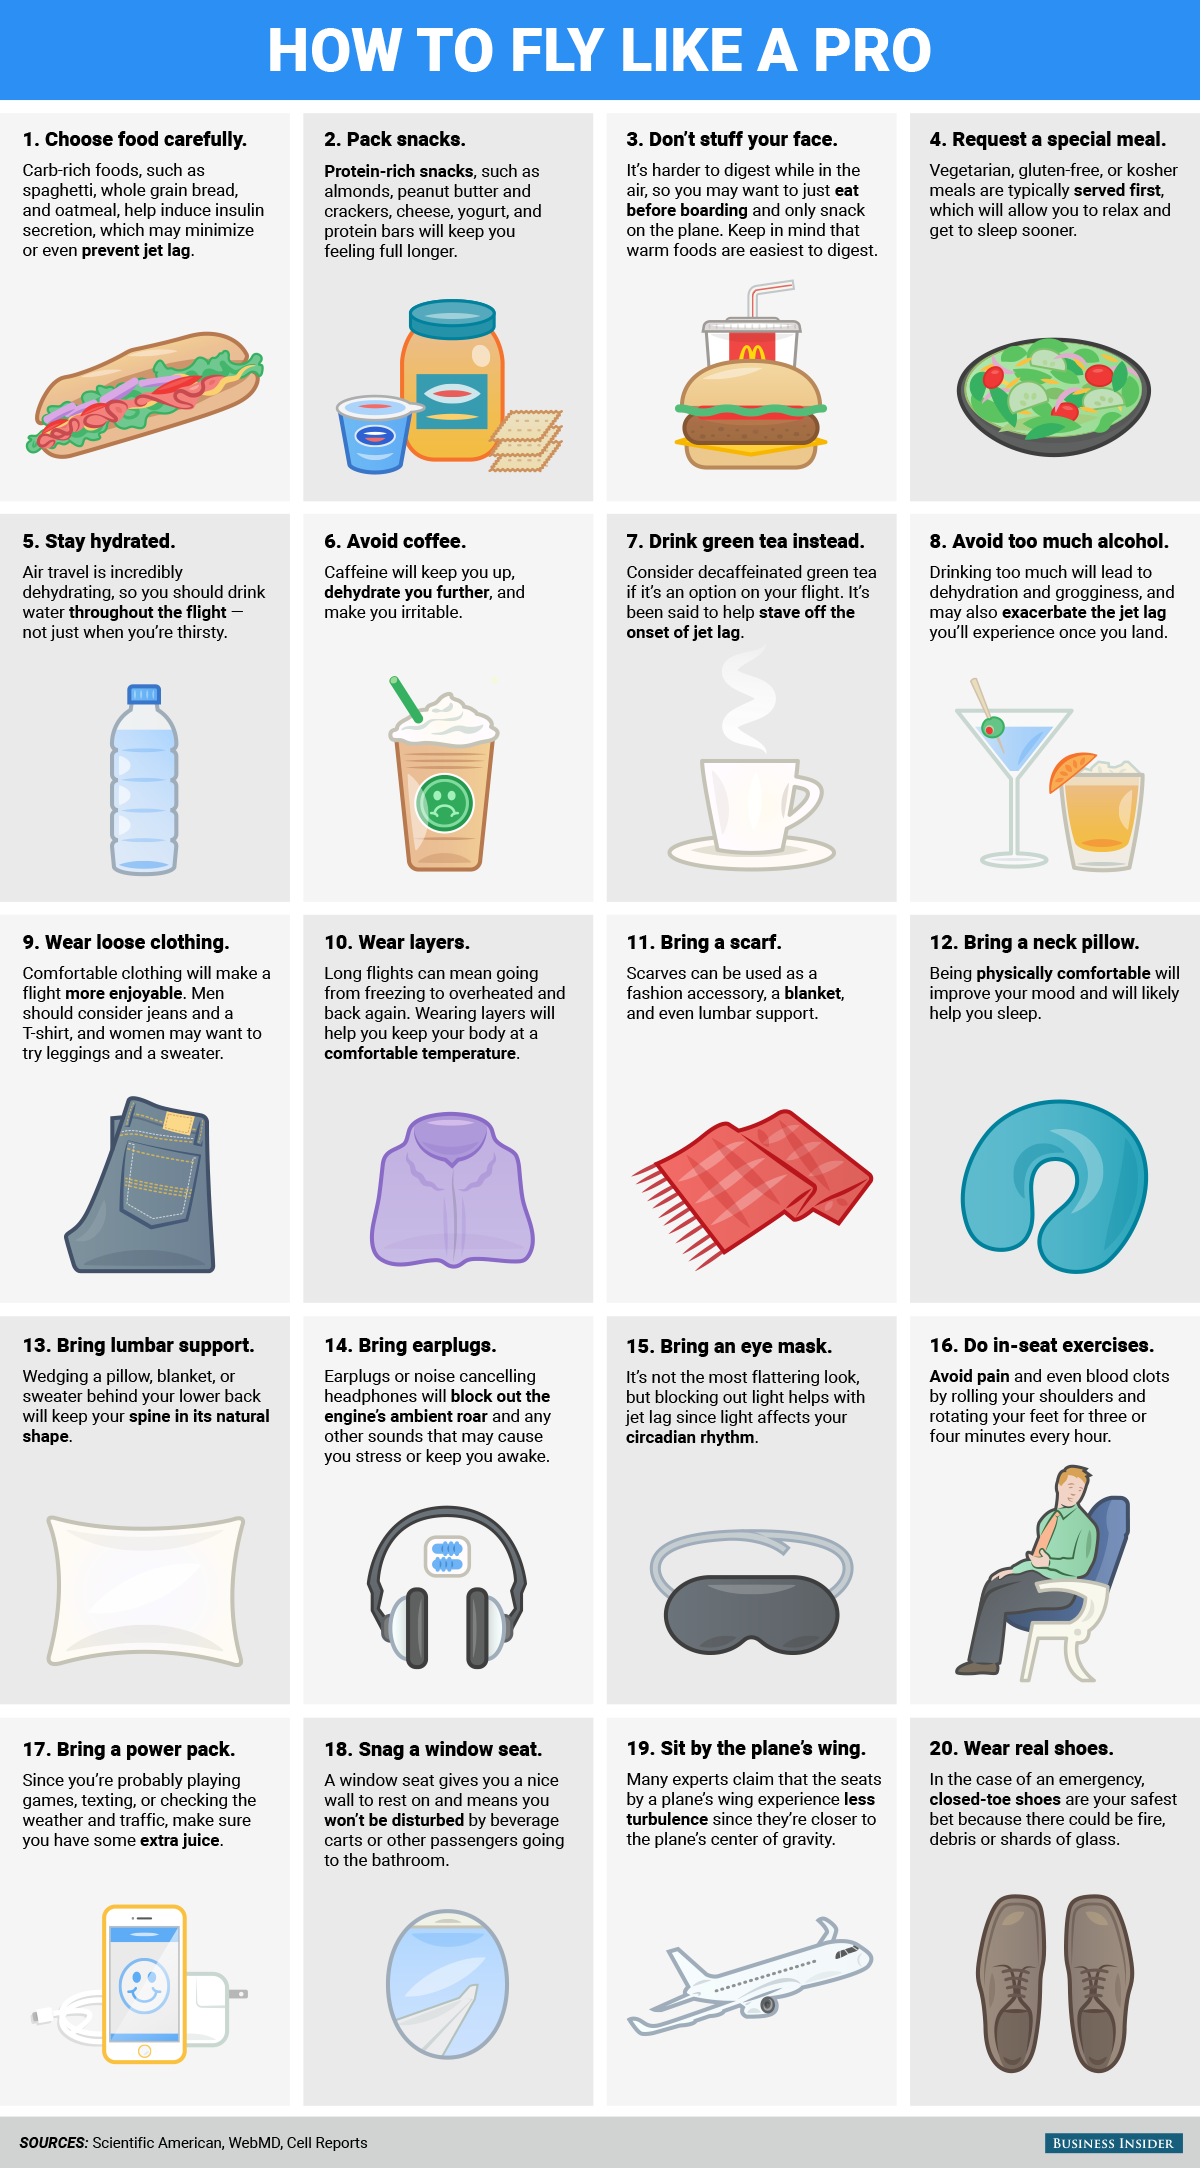 how to fly like a pro travel tips pinterest graphics travel